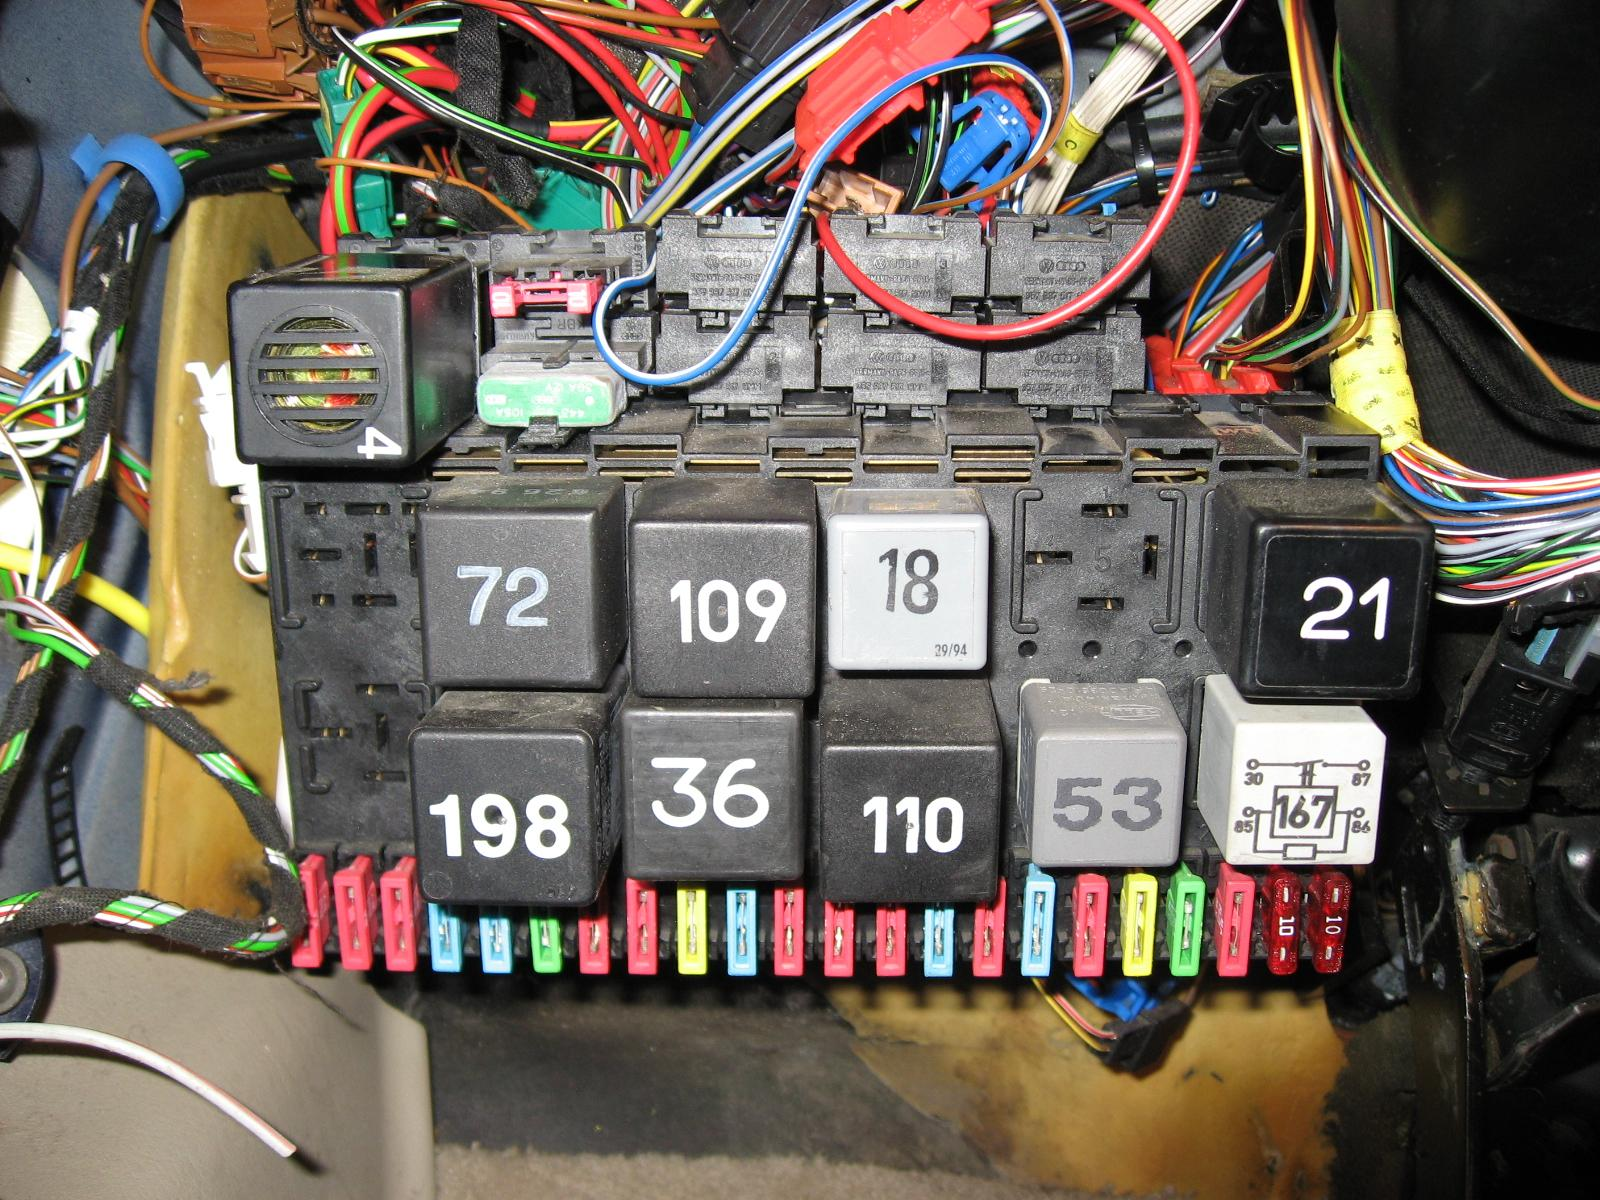 Audi B7 Rs4 Fuse Box Trusted Wiring Diagrams A4 Diagram Fourtitude Com P5 Passat Into A 98 Golf Wireing Problem